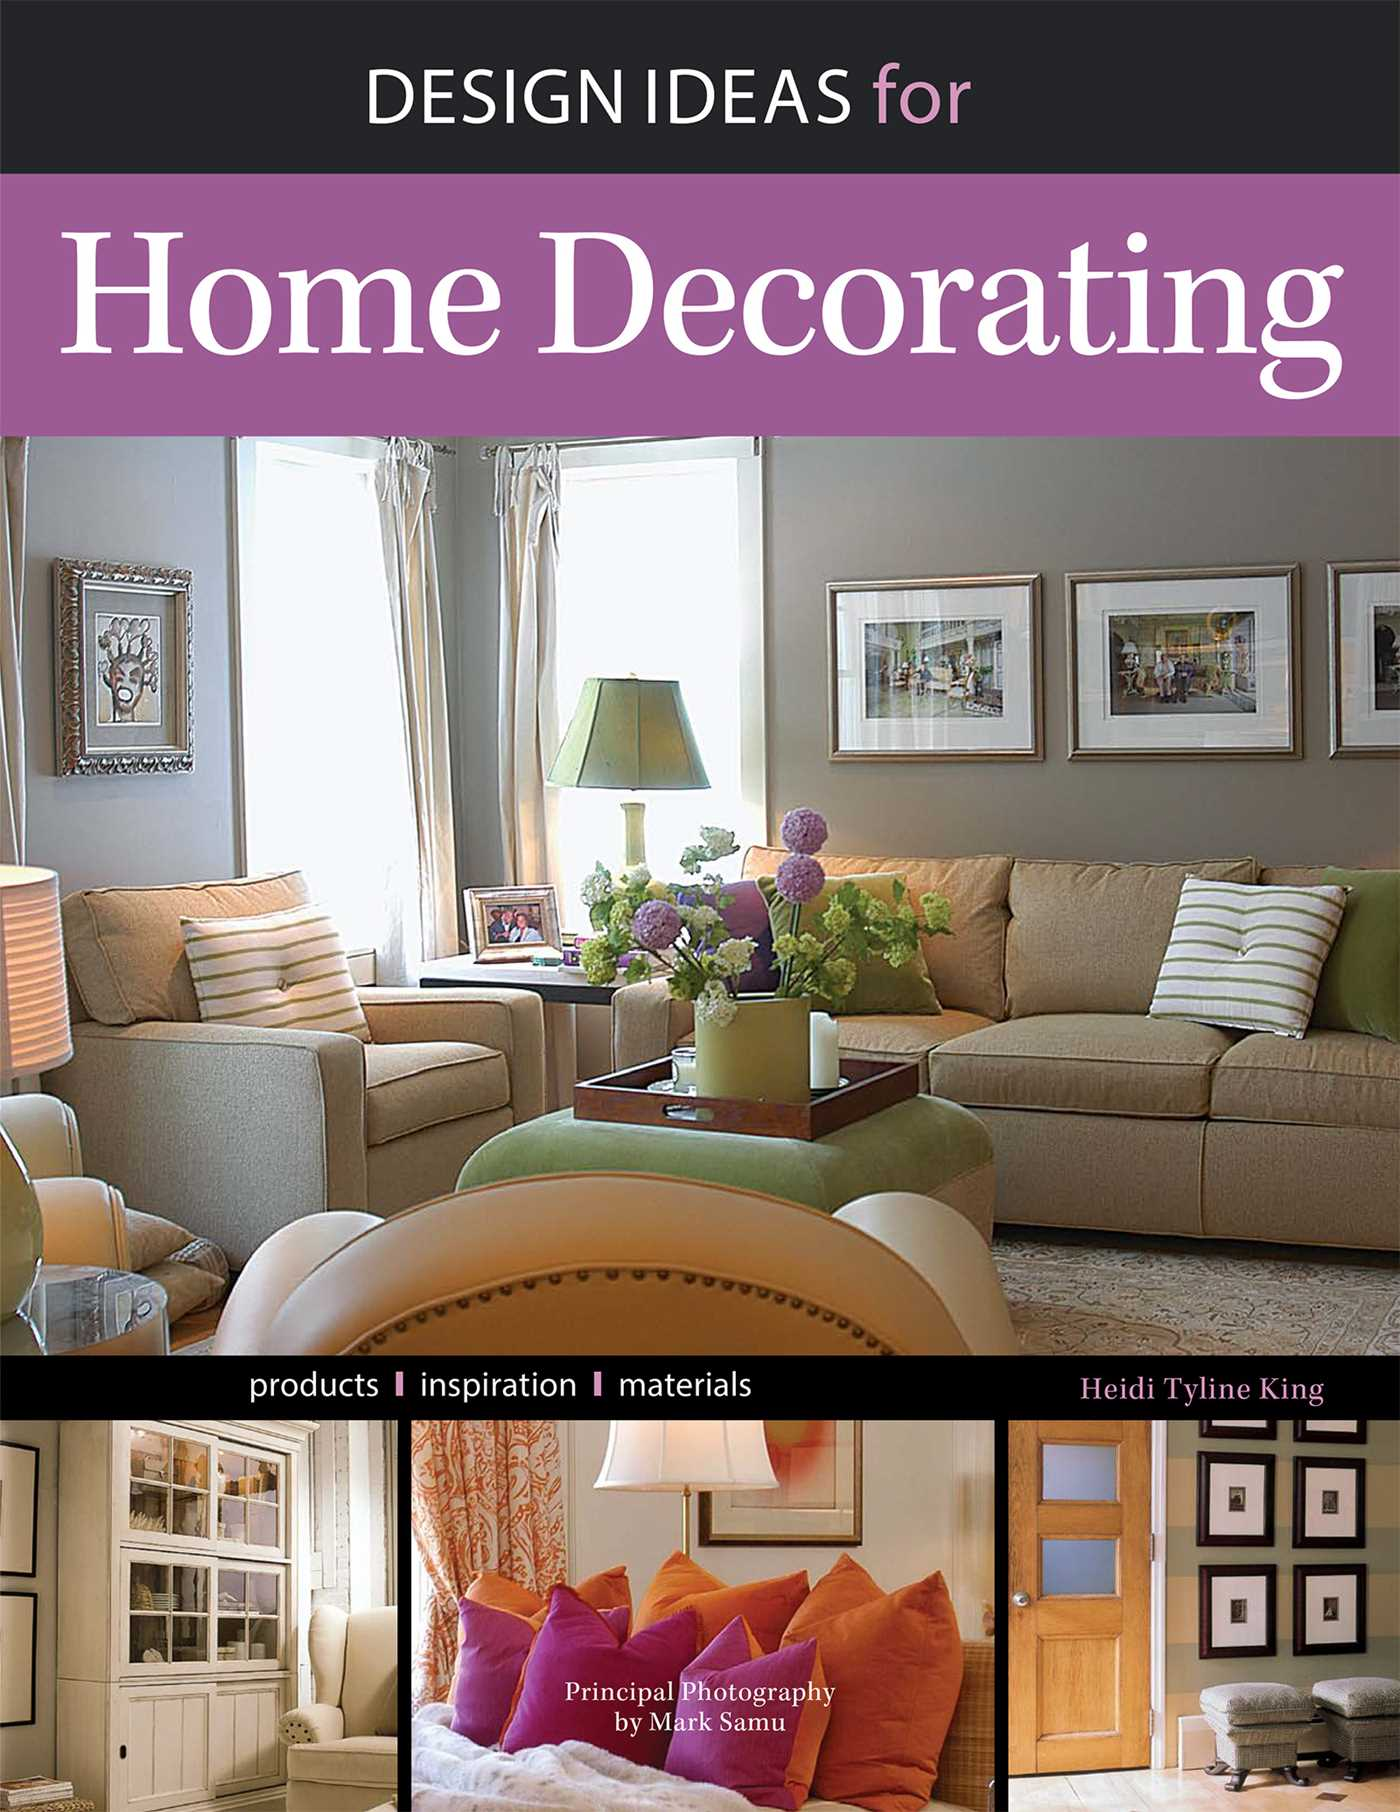 Design Ideas for Home Decorating | Book by Heidi Tyline King ...